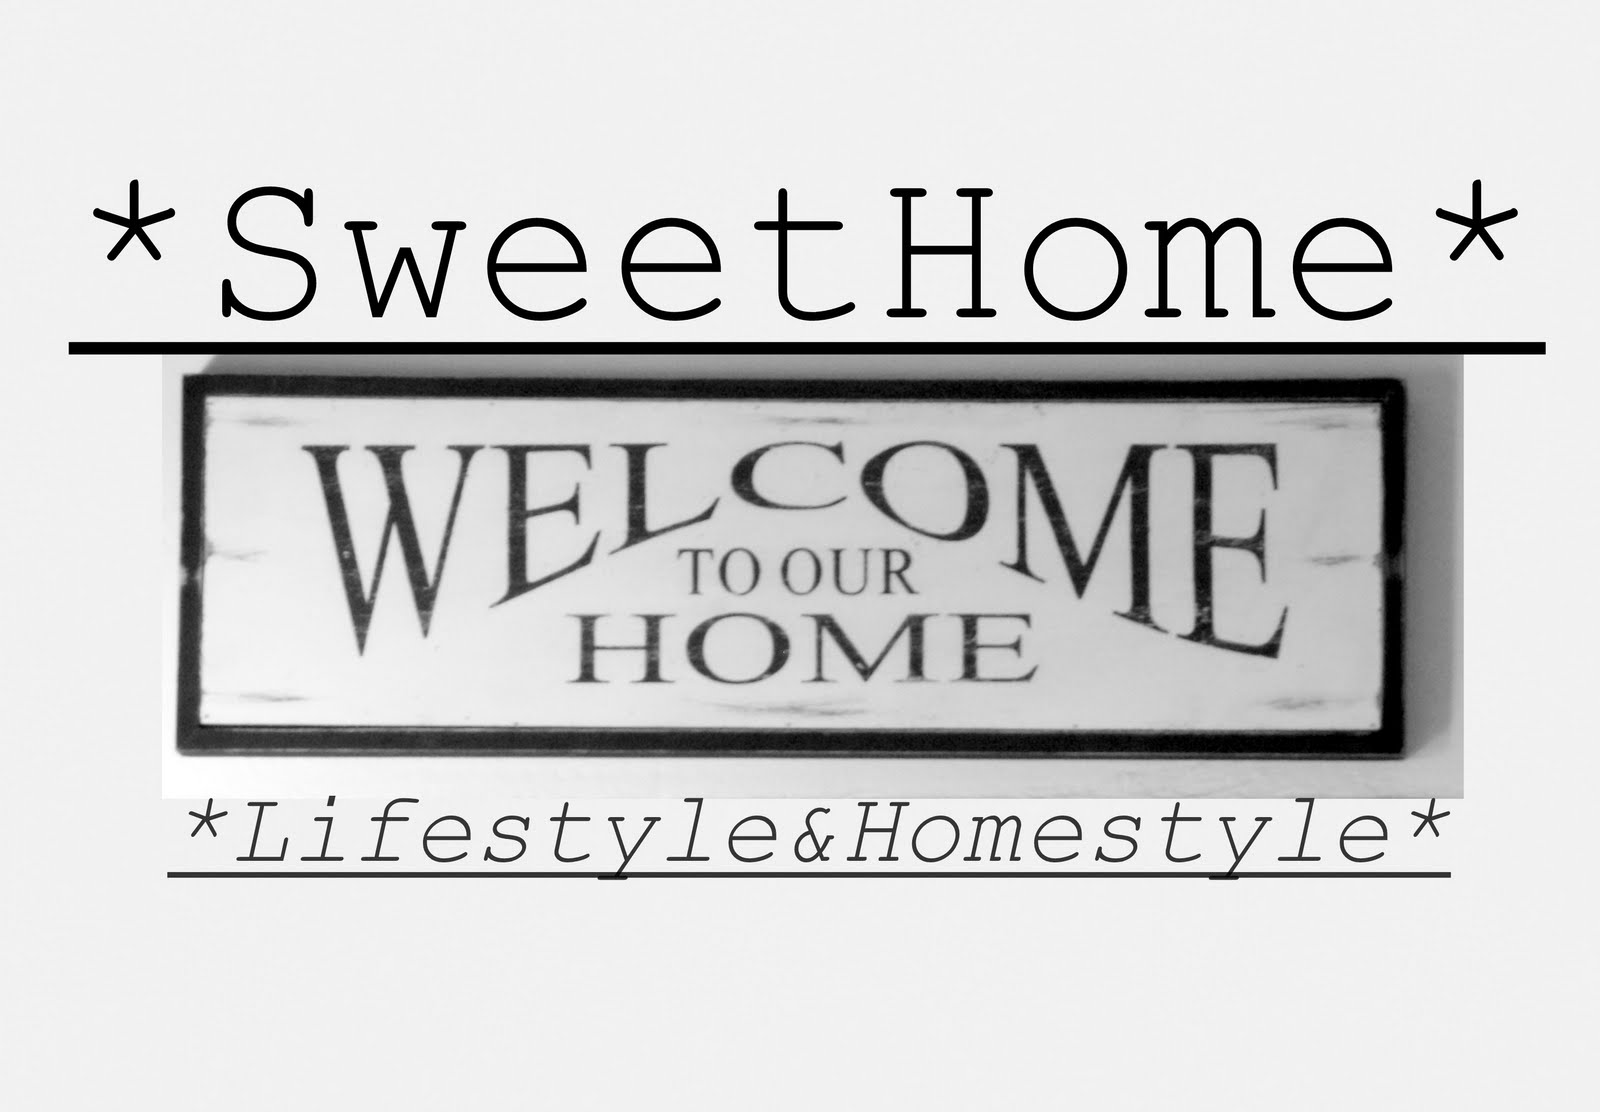 Sweet Home